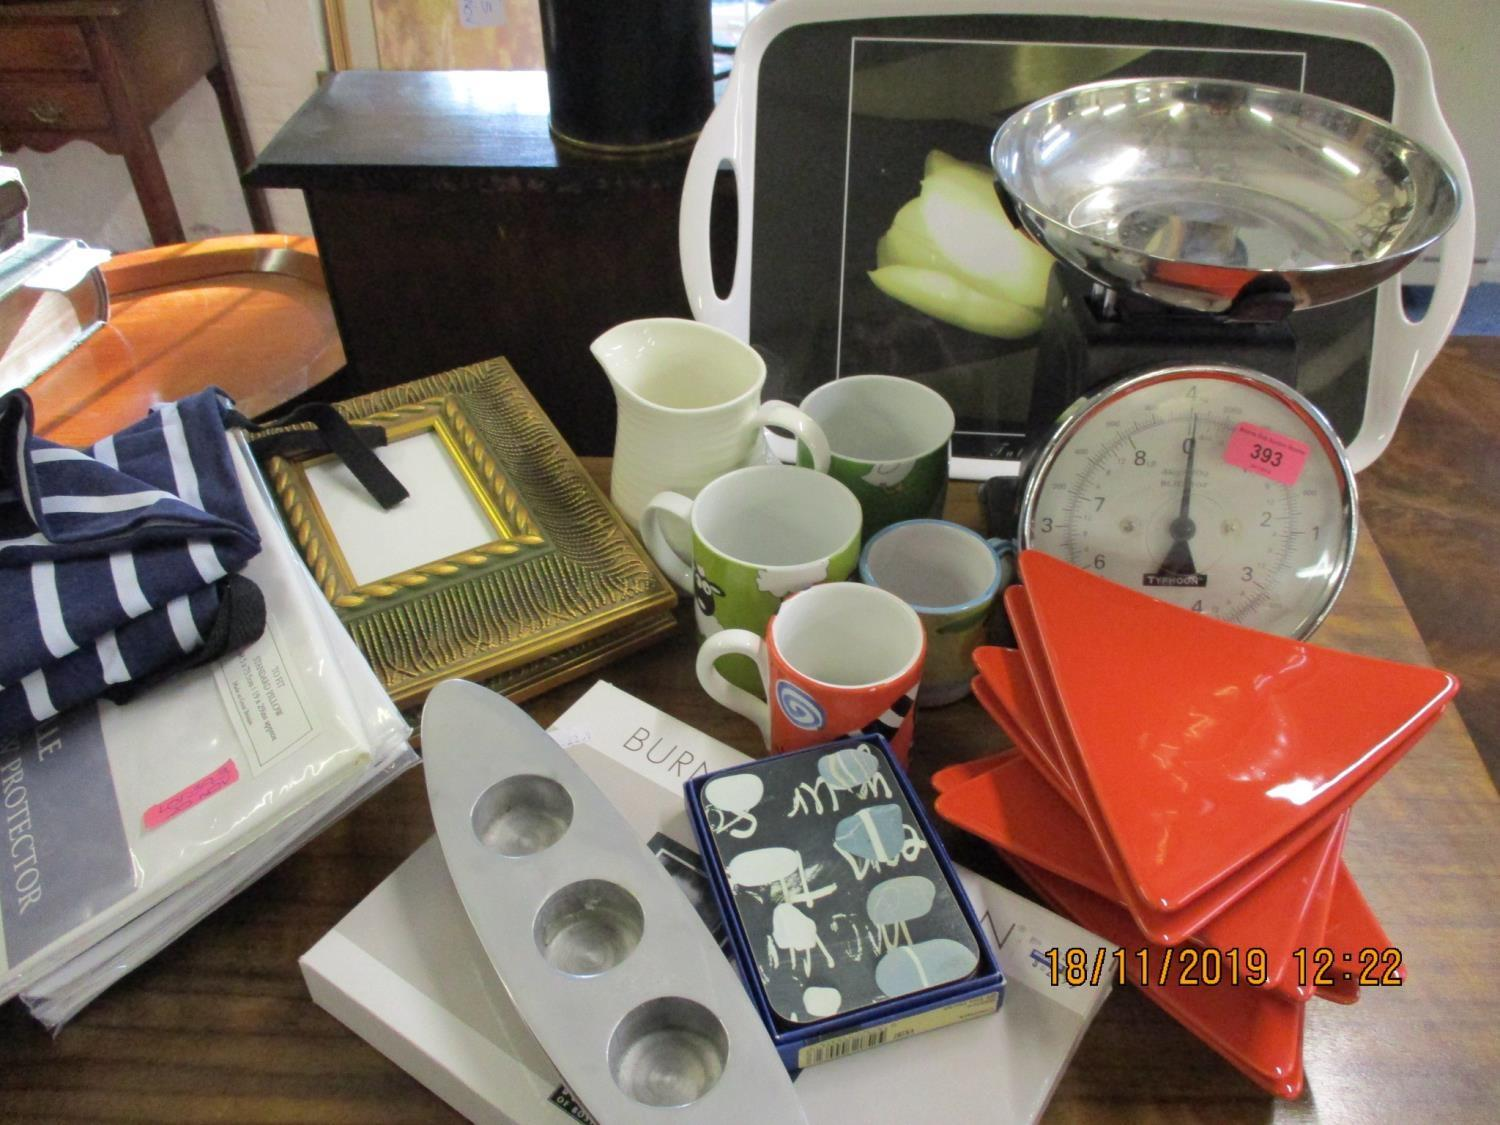 Lot 393 - A set of modern Typhoon kitchen scales and contemporary ceramics, John Lewis pillowcase, a pair of